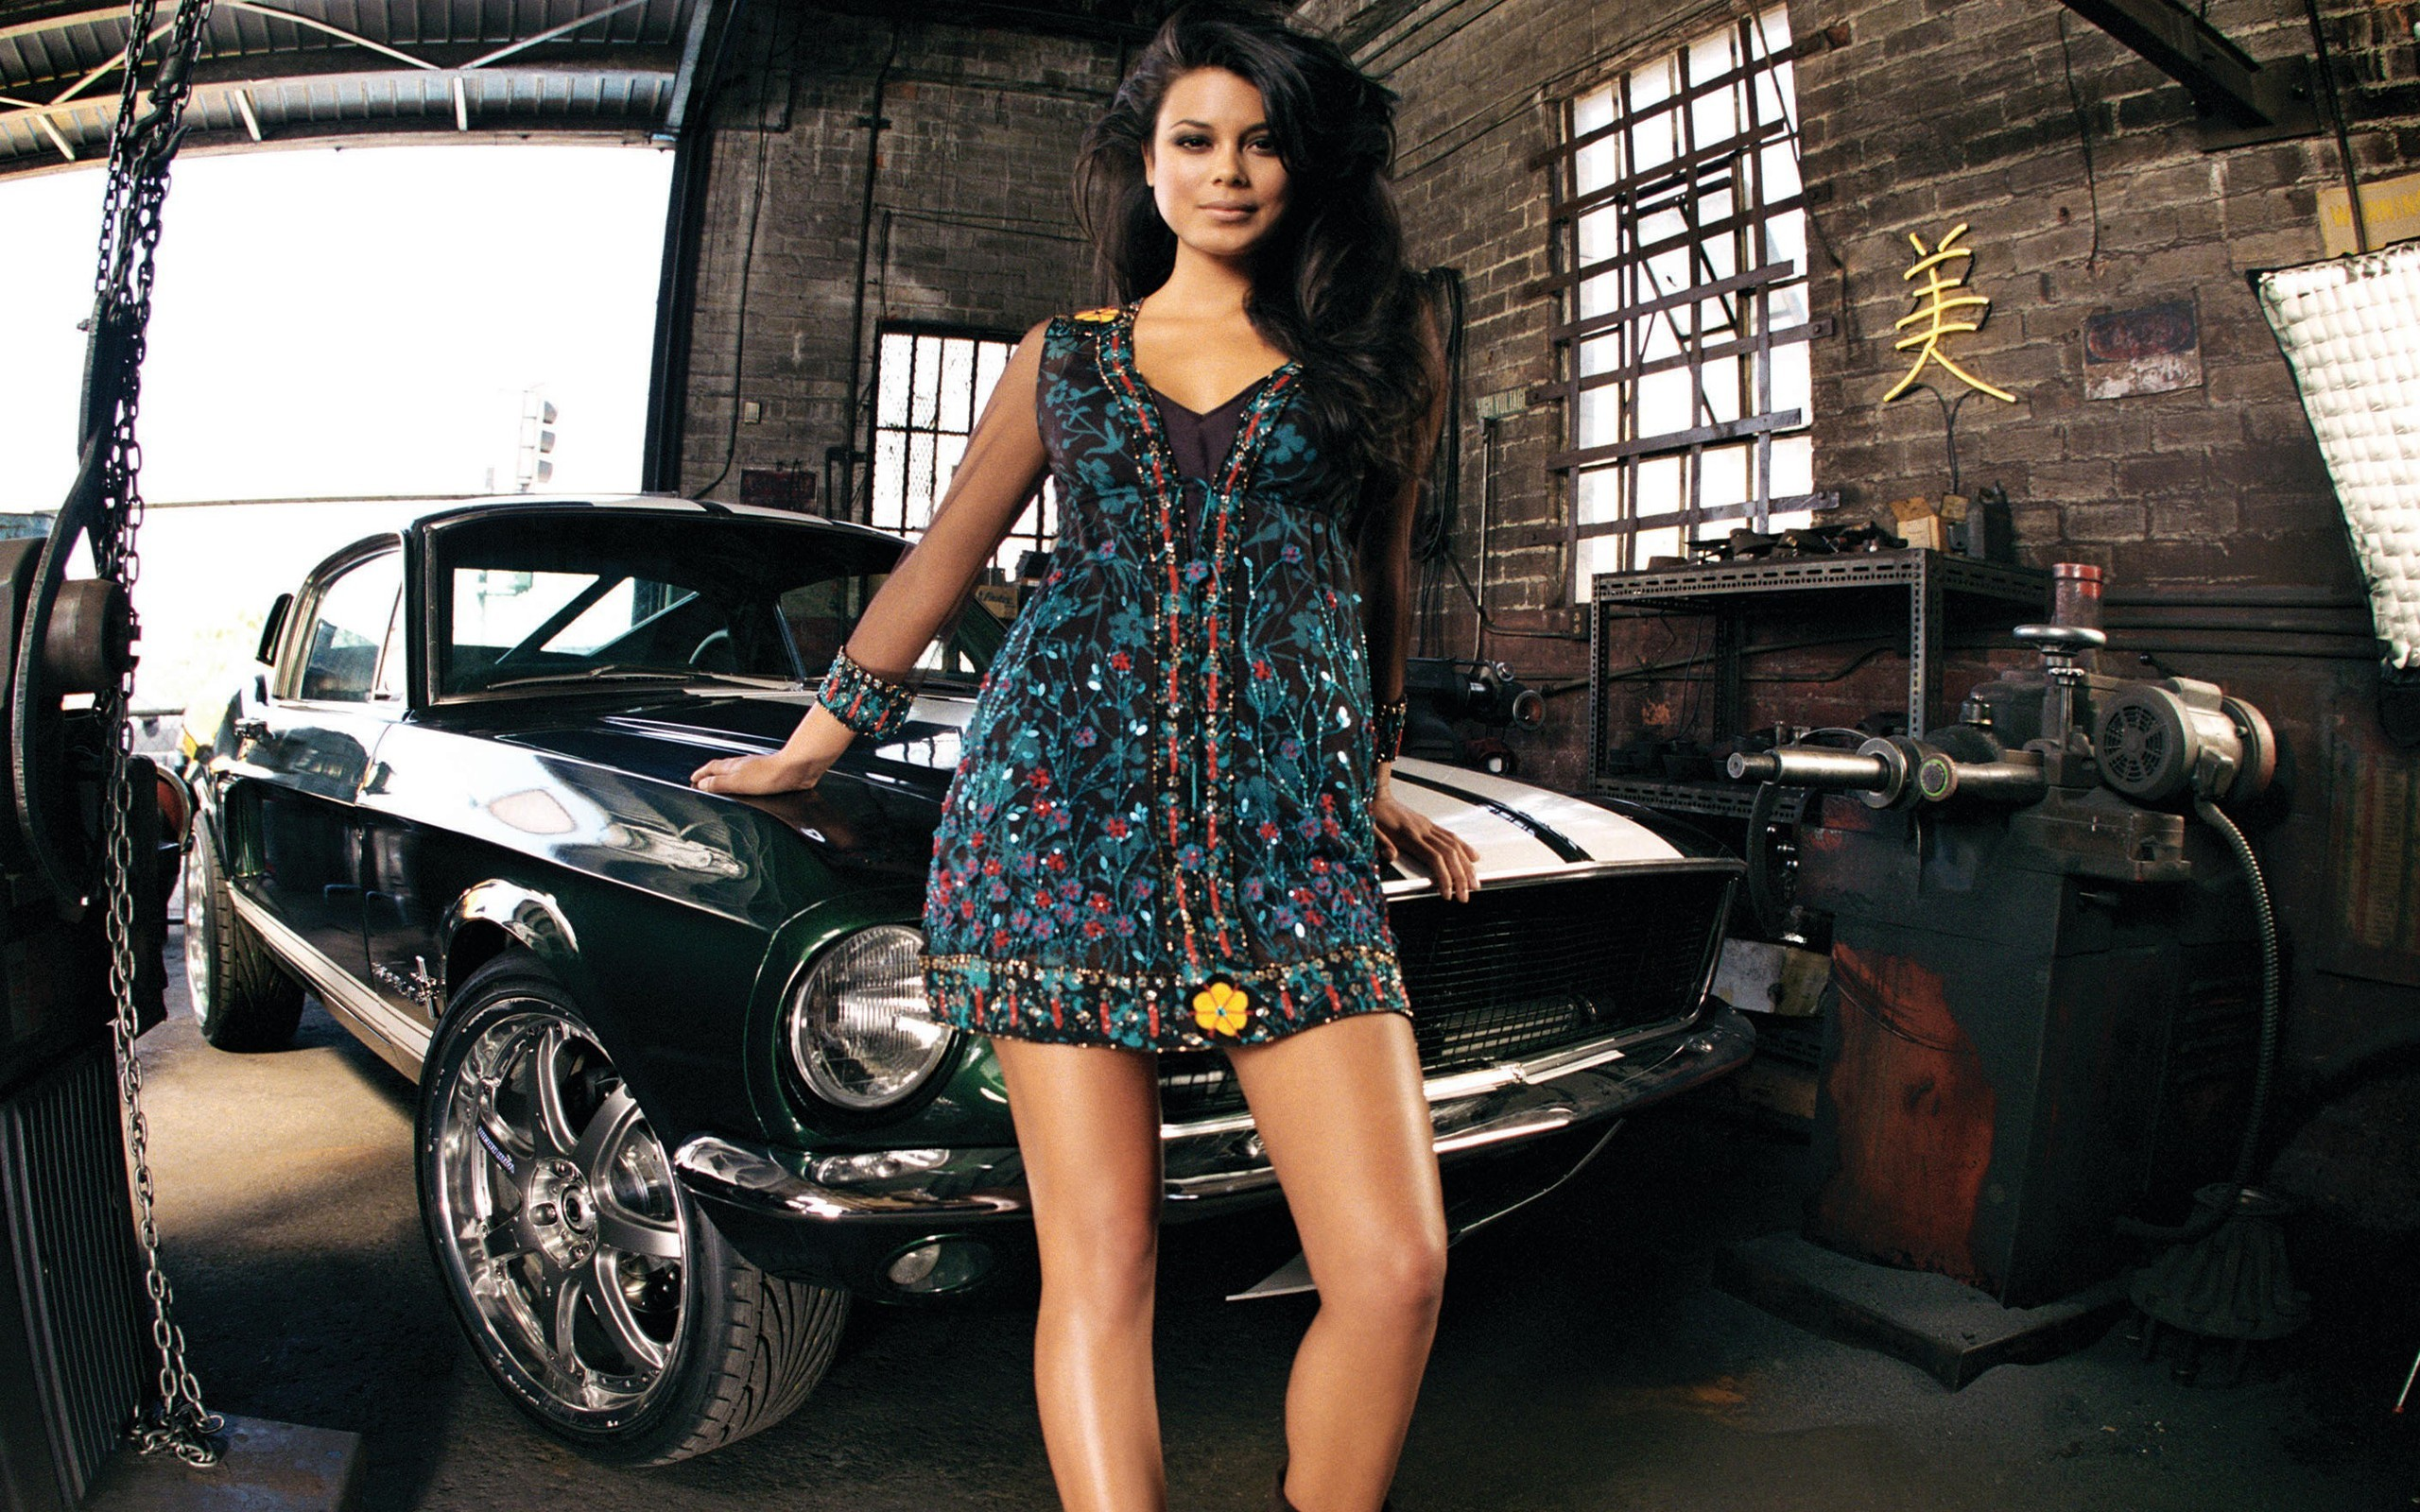 woman cars vehicles nathalie kelley HD Wallpaper